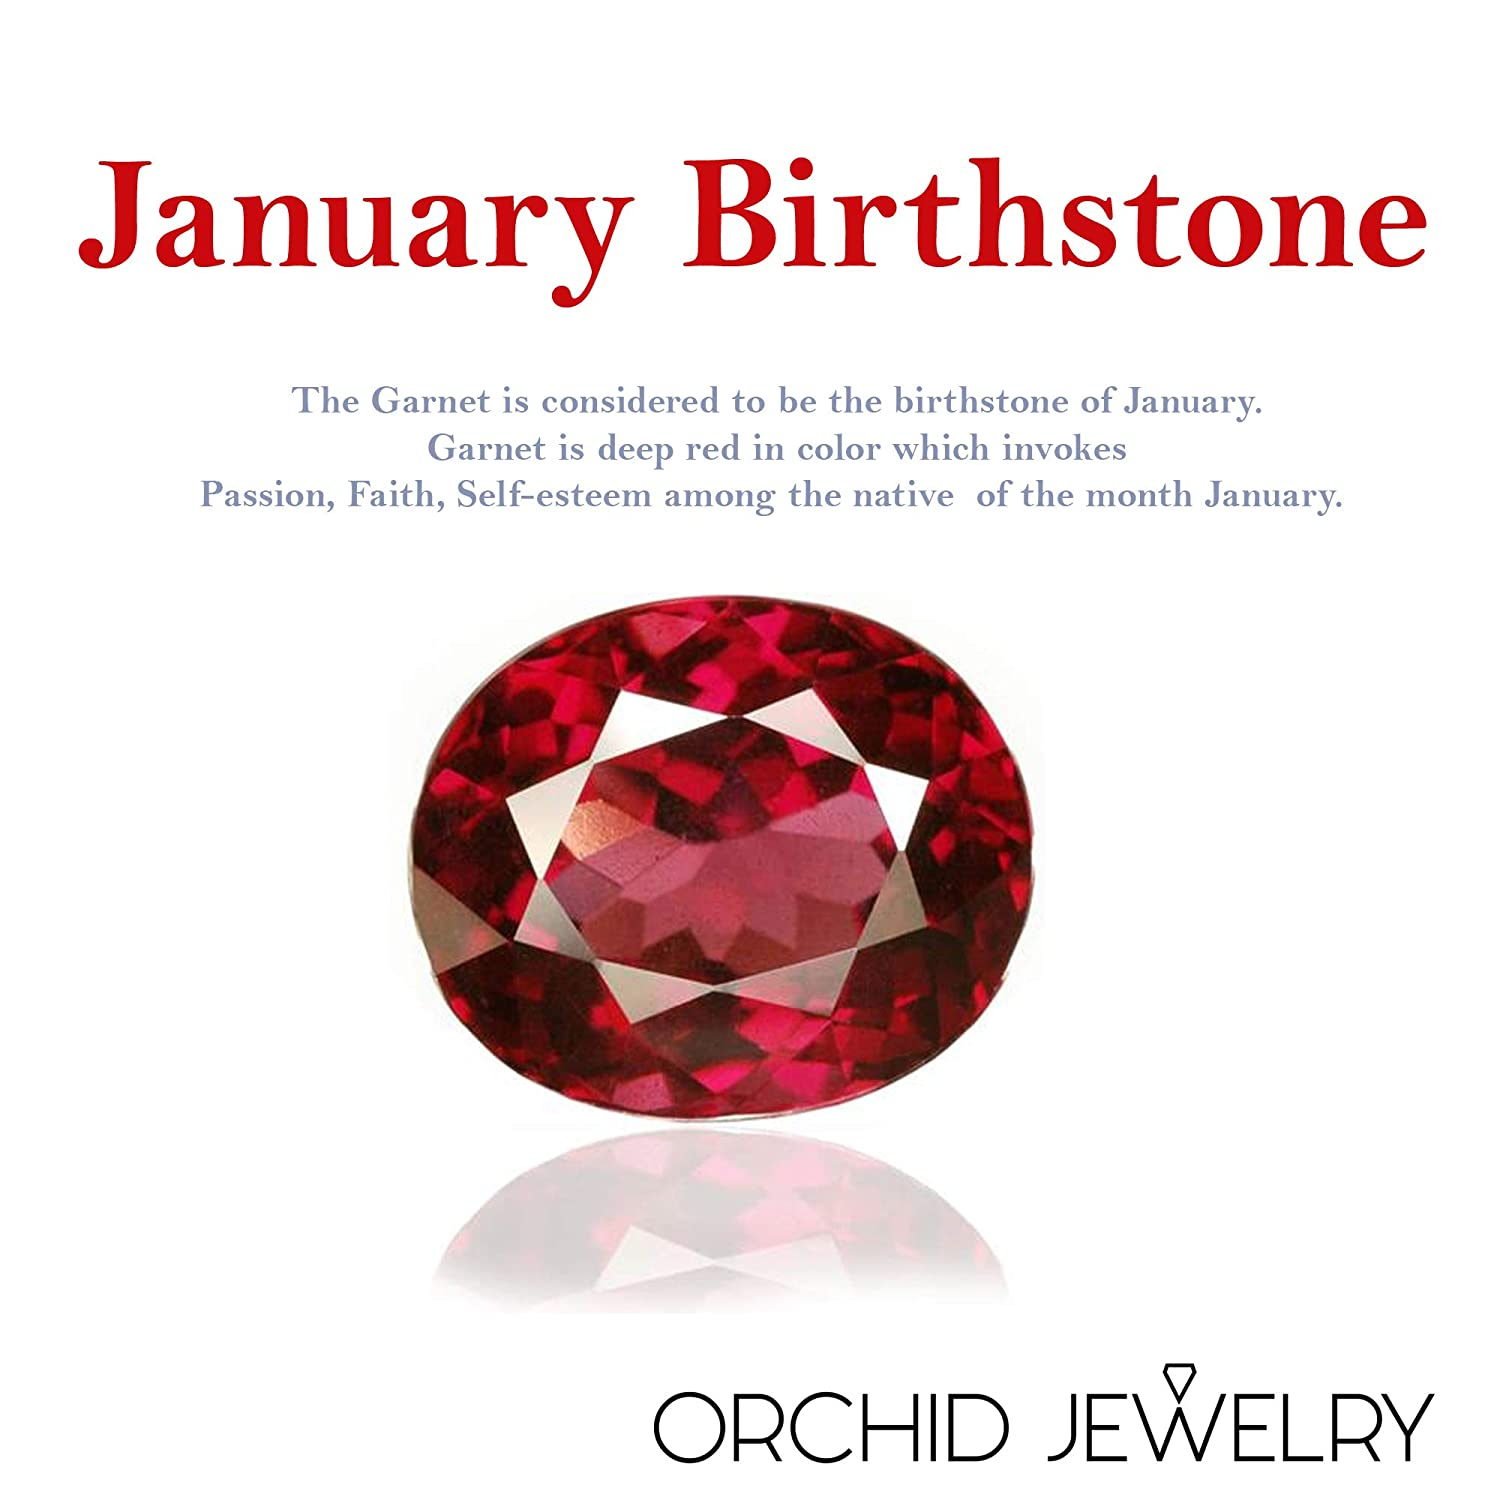 Life For Christmas A Unique Gift Idea For Wife Orchid Jewelry 0.95 Ctw Natural Round Red Garnet Sterling Silver Pendant With An 18 Inch Chain Or Necklace-January Birthstone Gemstone